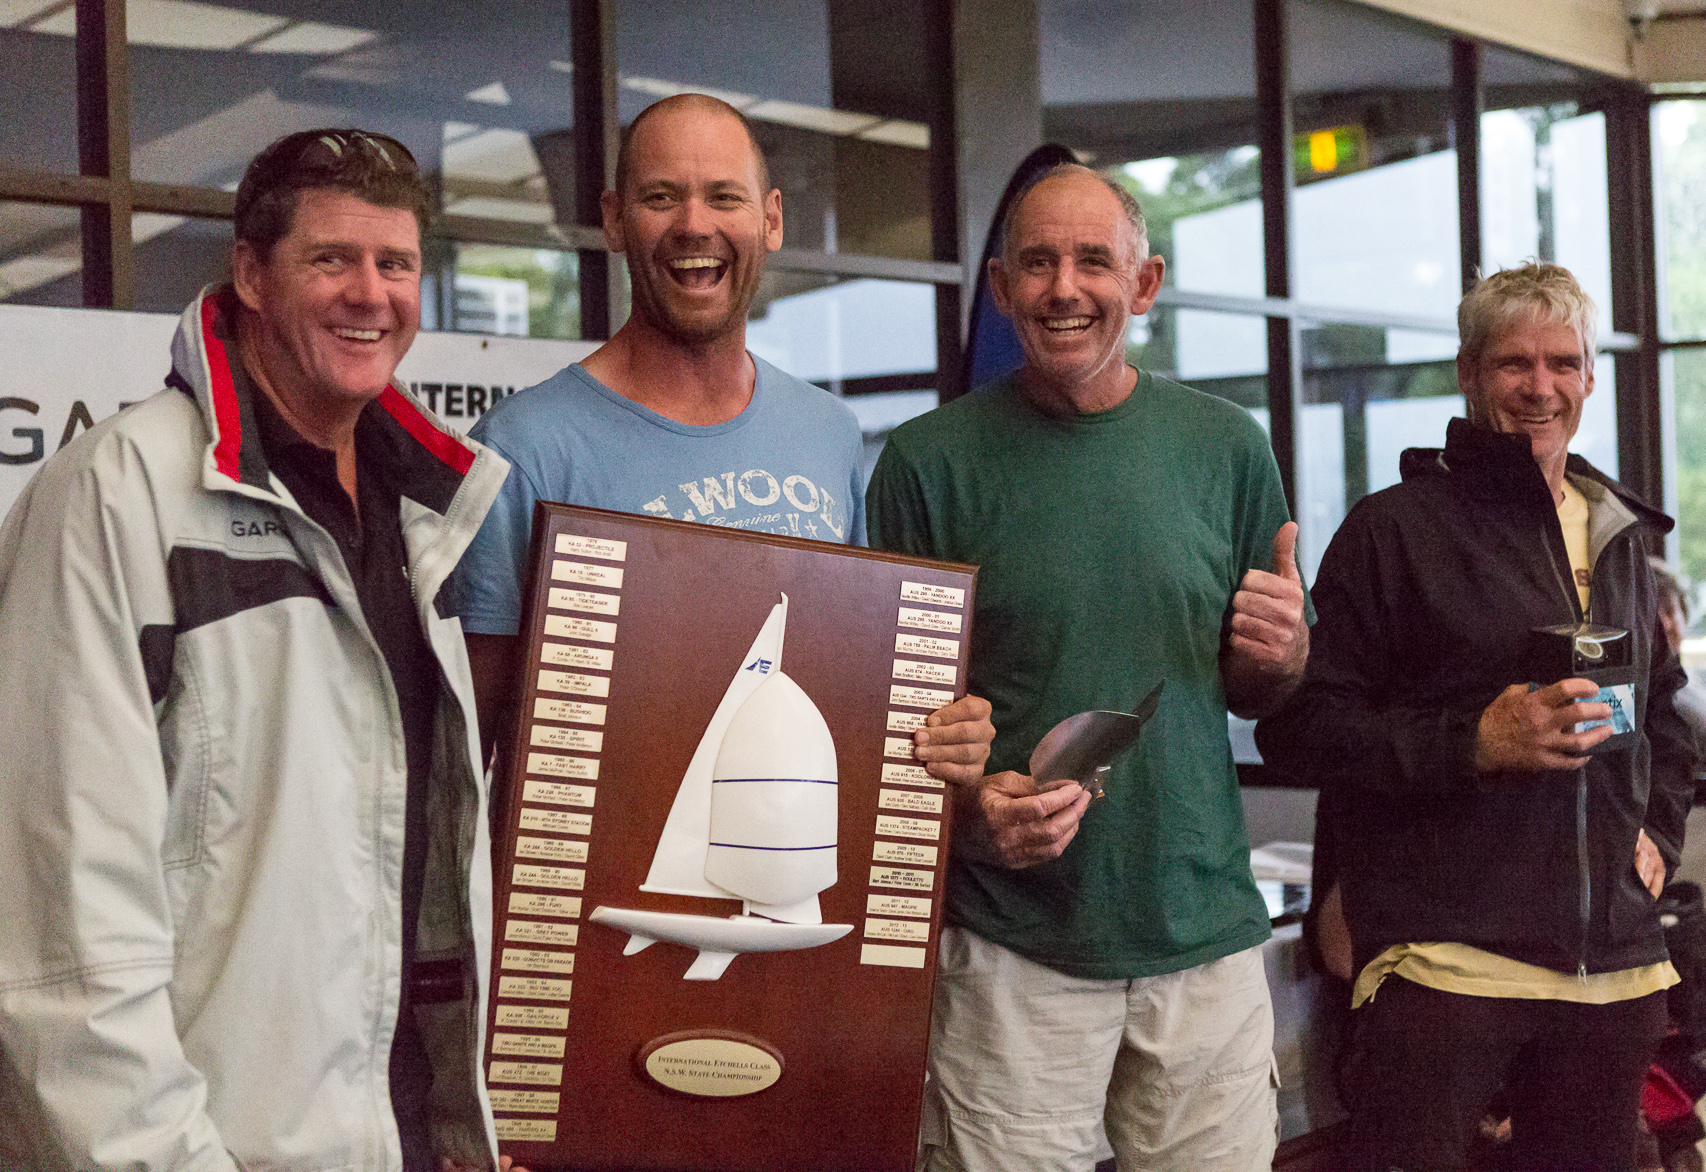 Winners are grinners – none more so than Graeme Taylor, Steve Jarvin and Grant Simmer as Garmin's Jason Browne presented them their loot